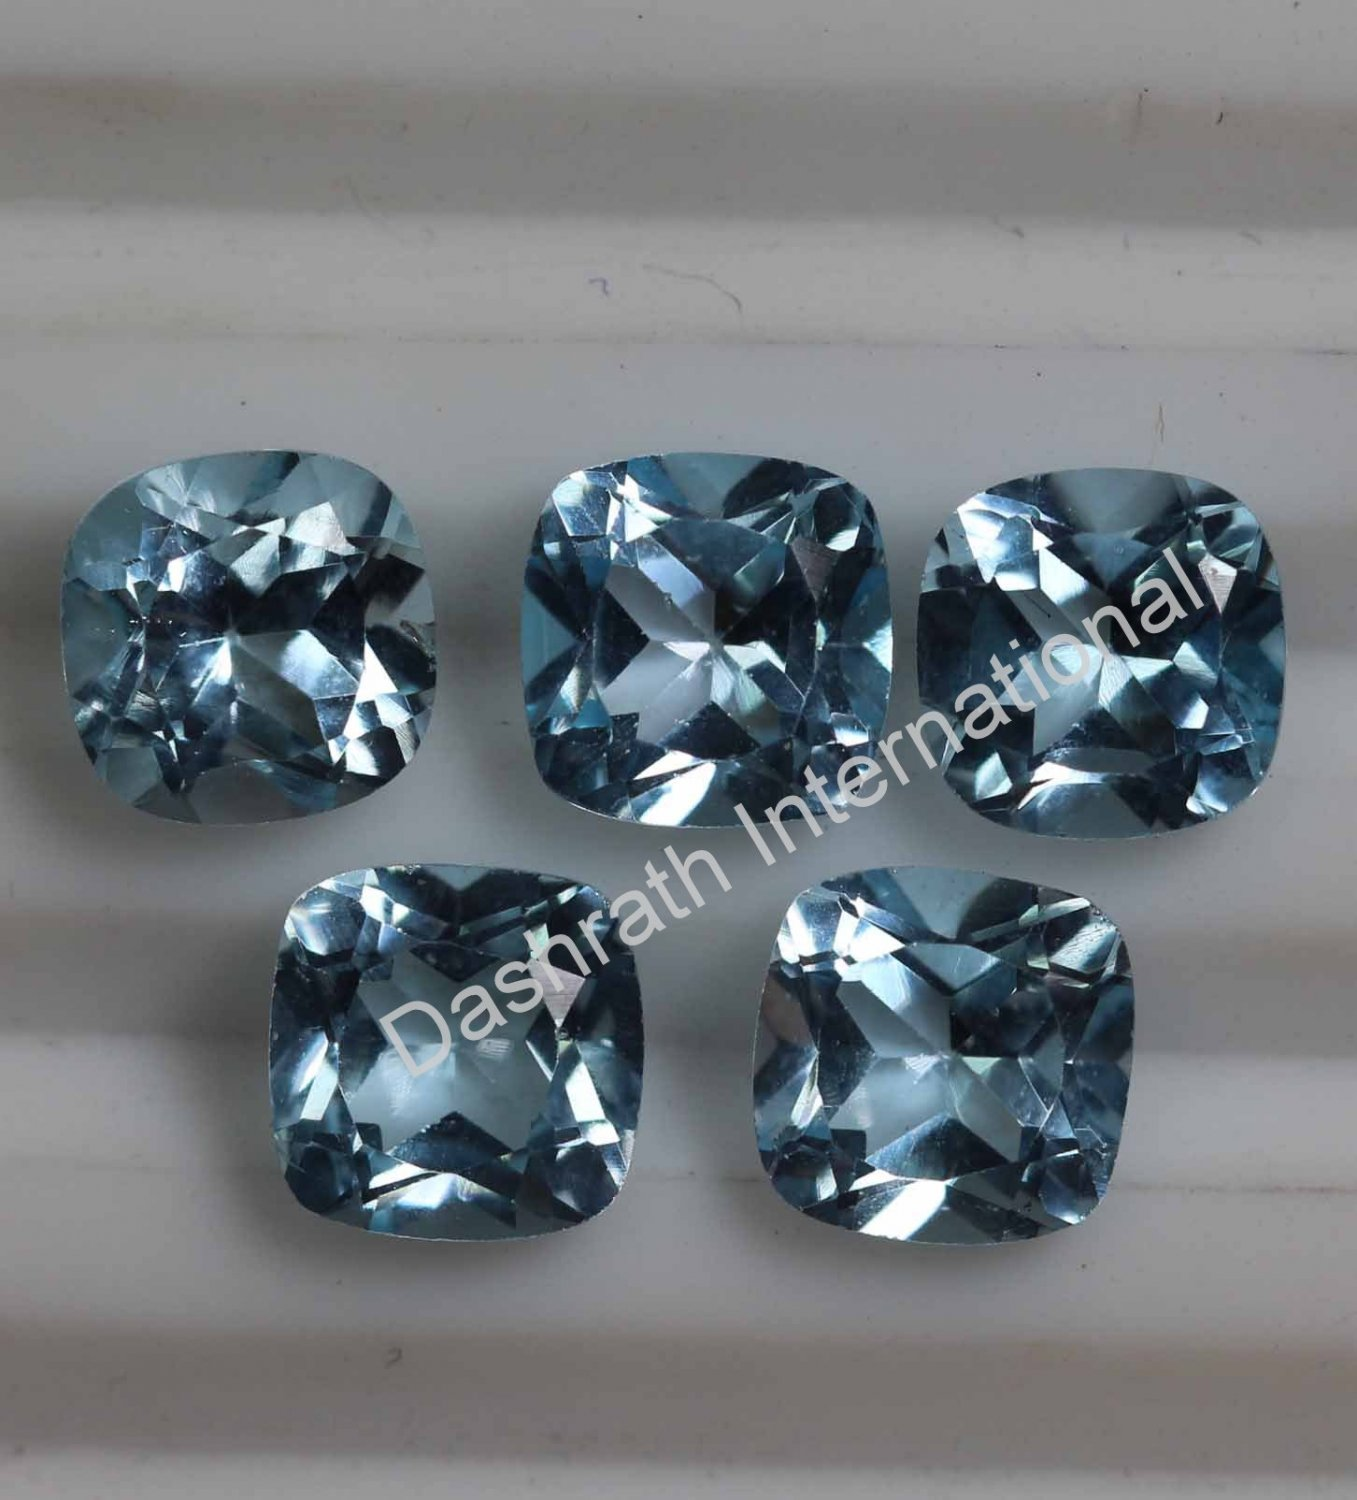 4mm Natural Sky Blue Topaz Faceted Cut Cushion 50 Pieces Lot Top Quality Loose Gemstone